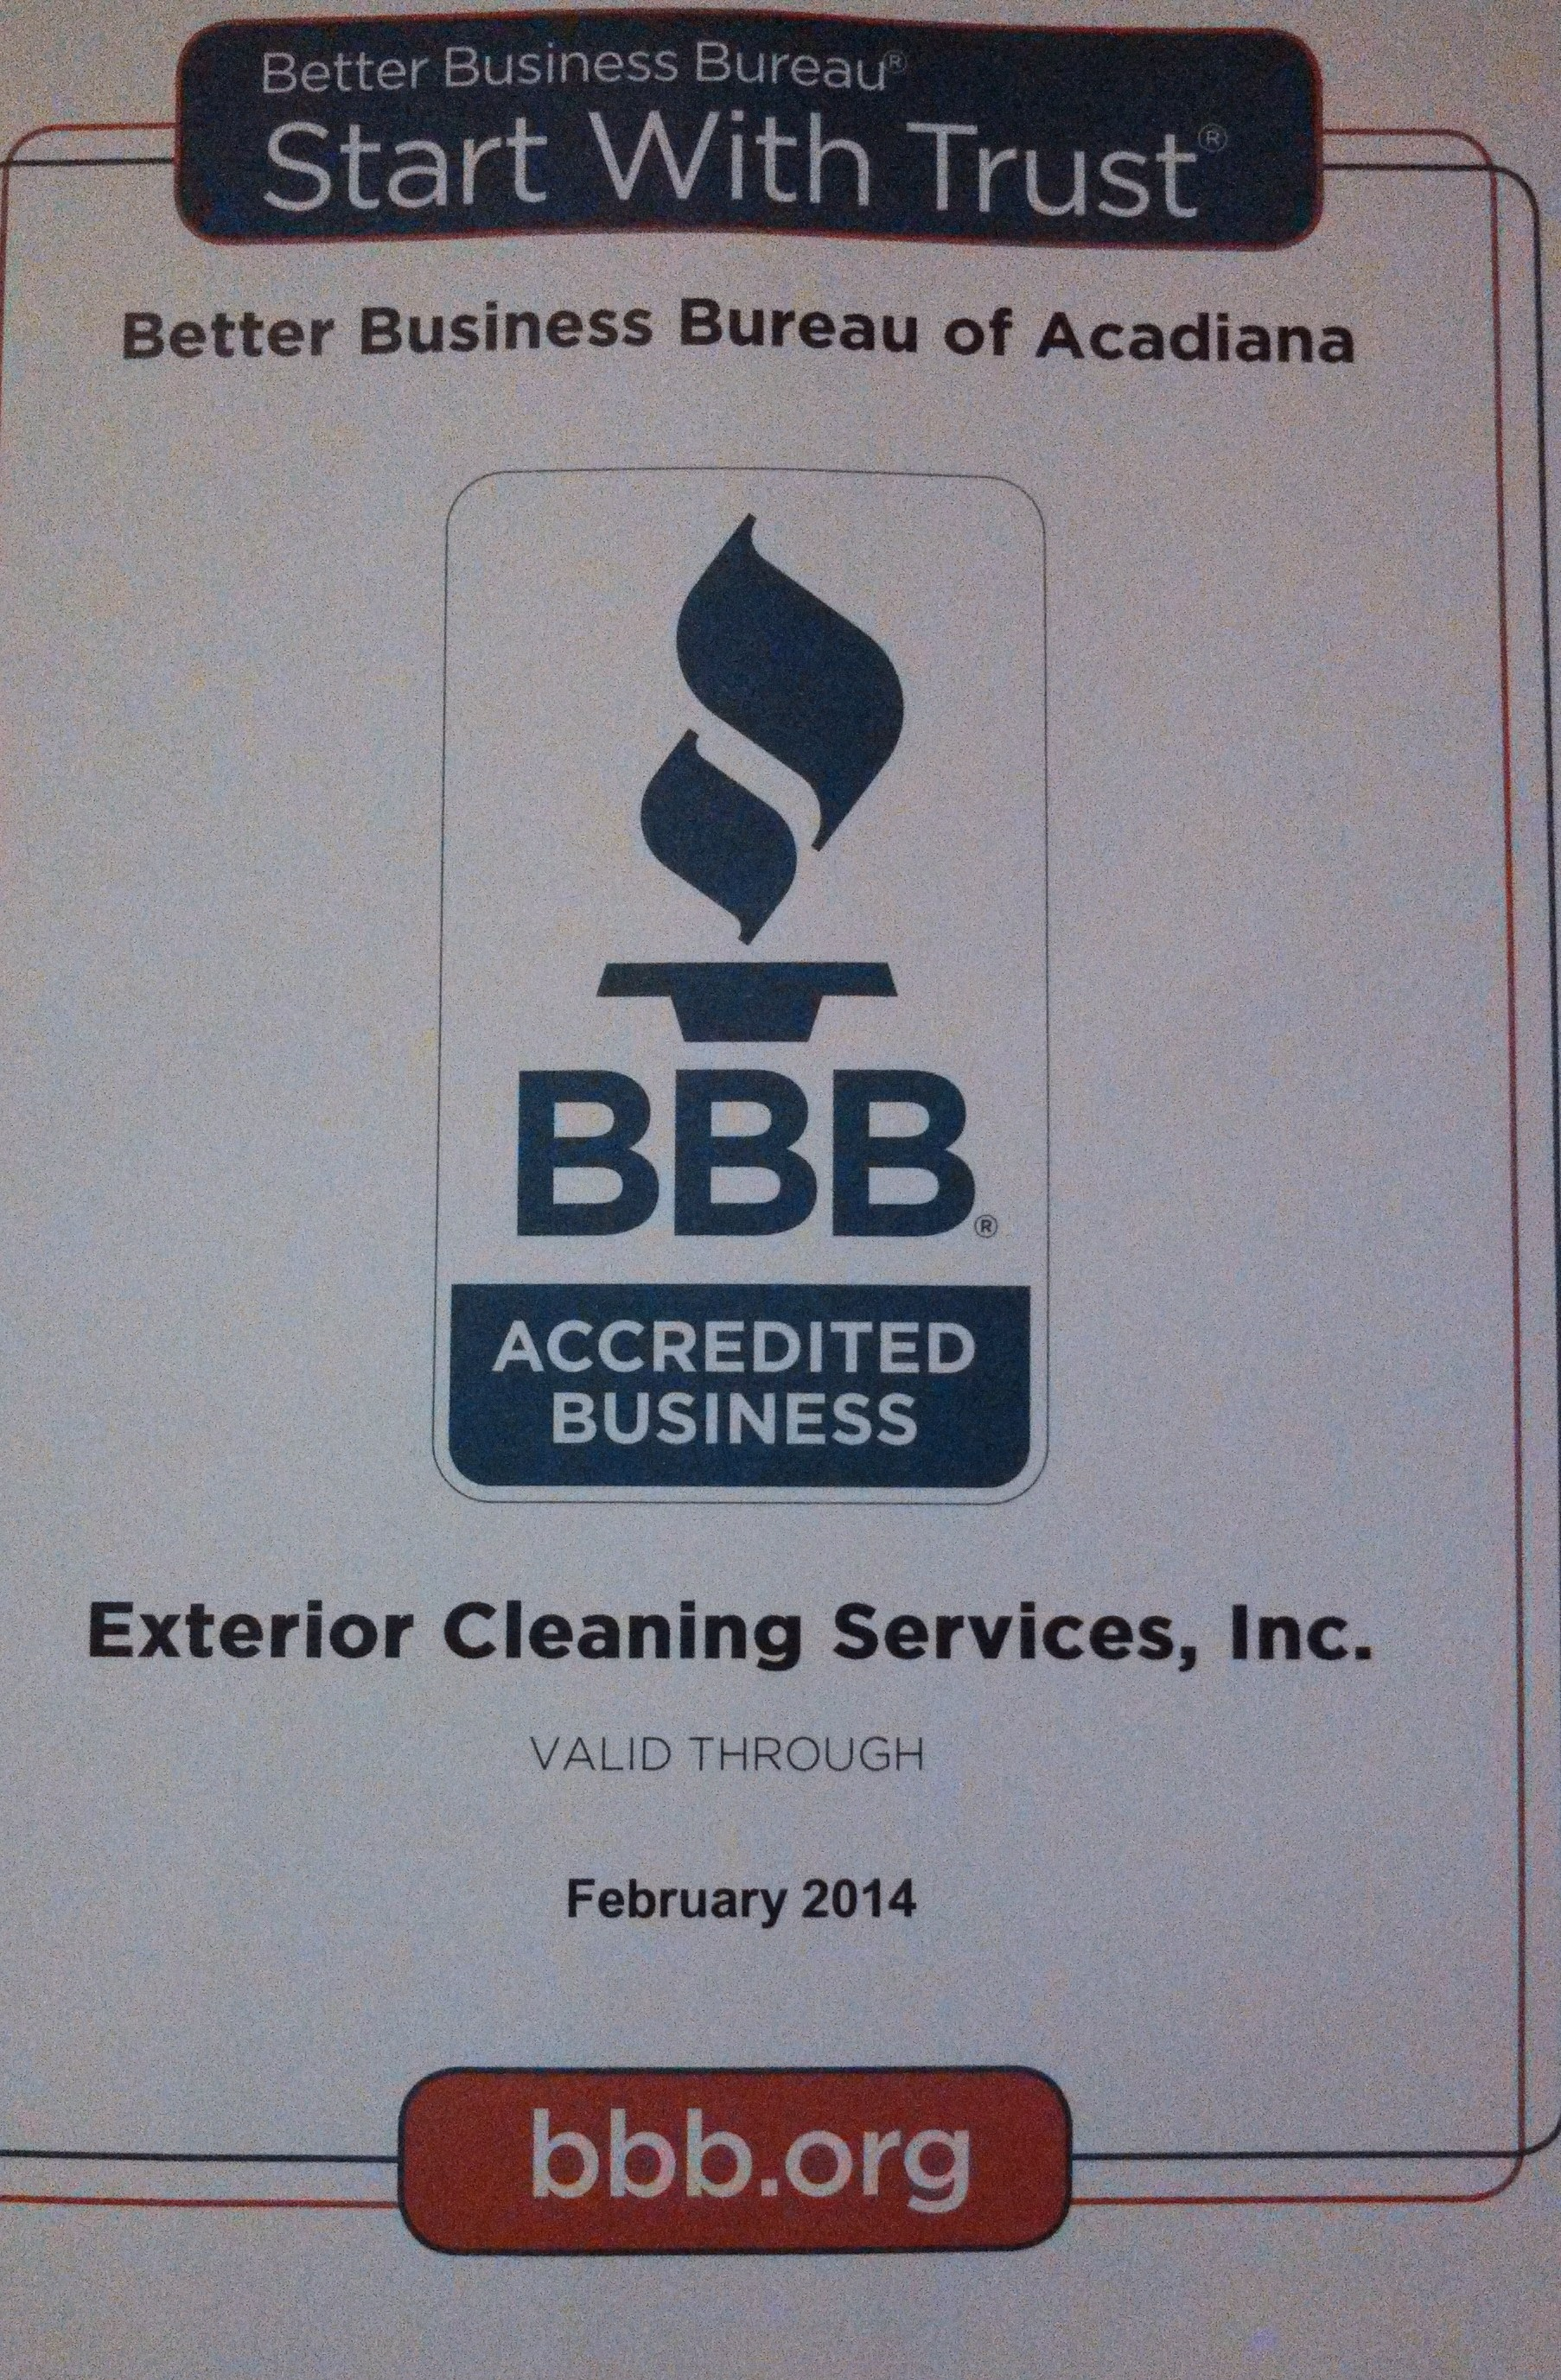 Accredited by the Better Business of Acadiana